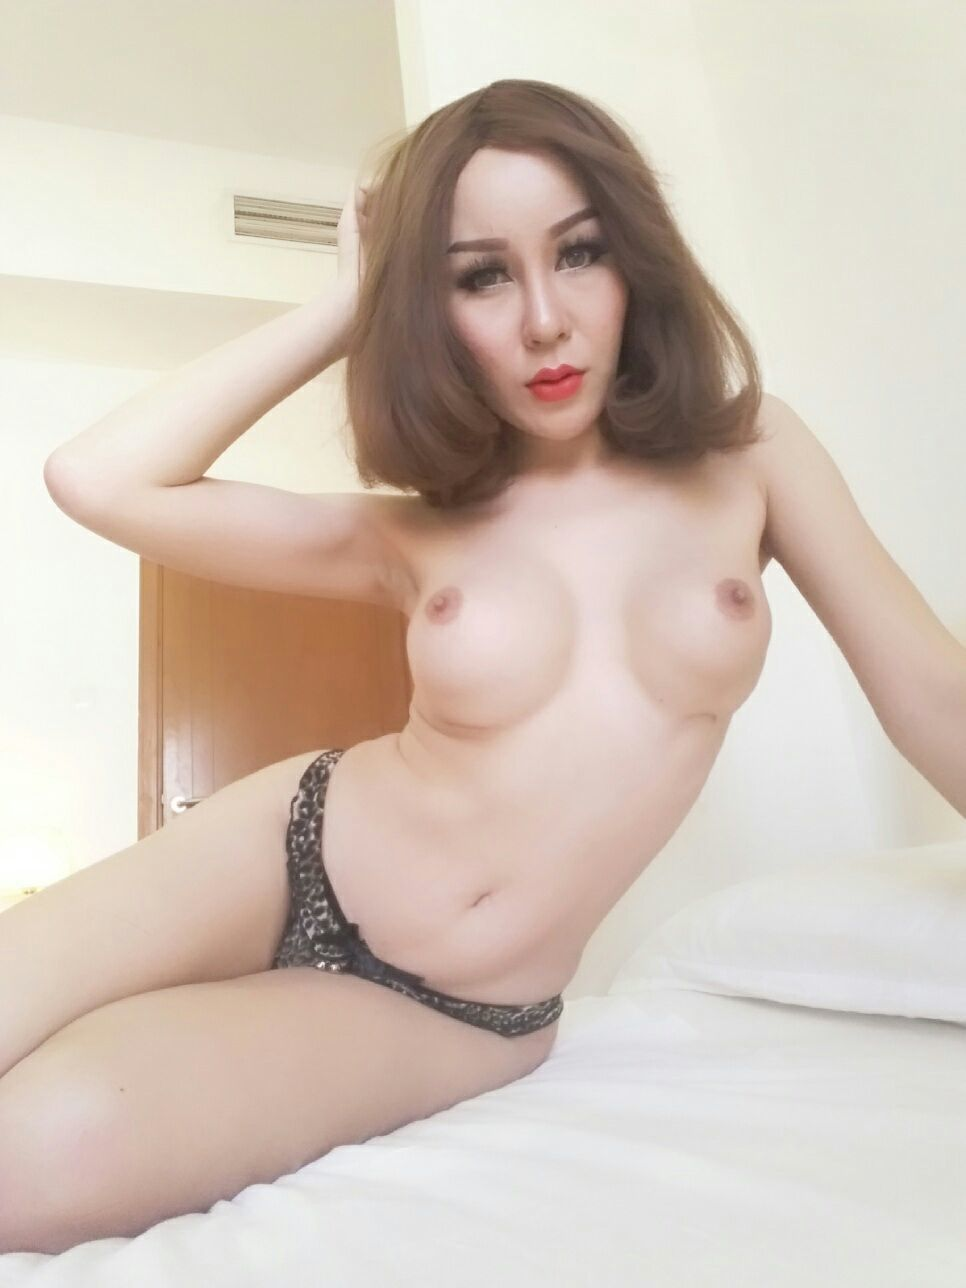 privat thai massasje oslo ts escorts oslo